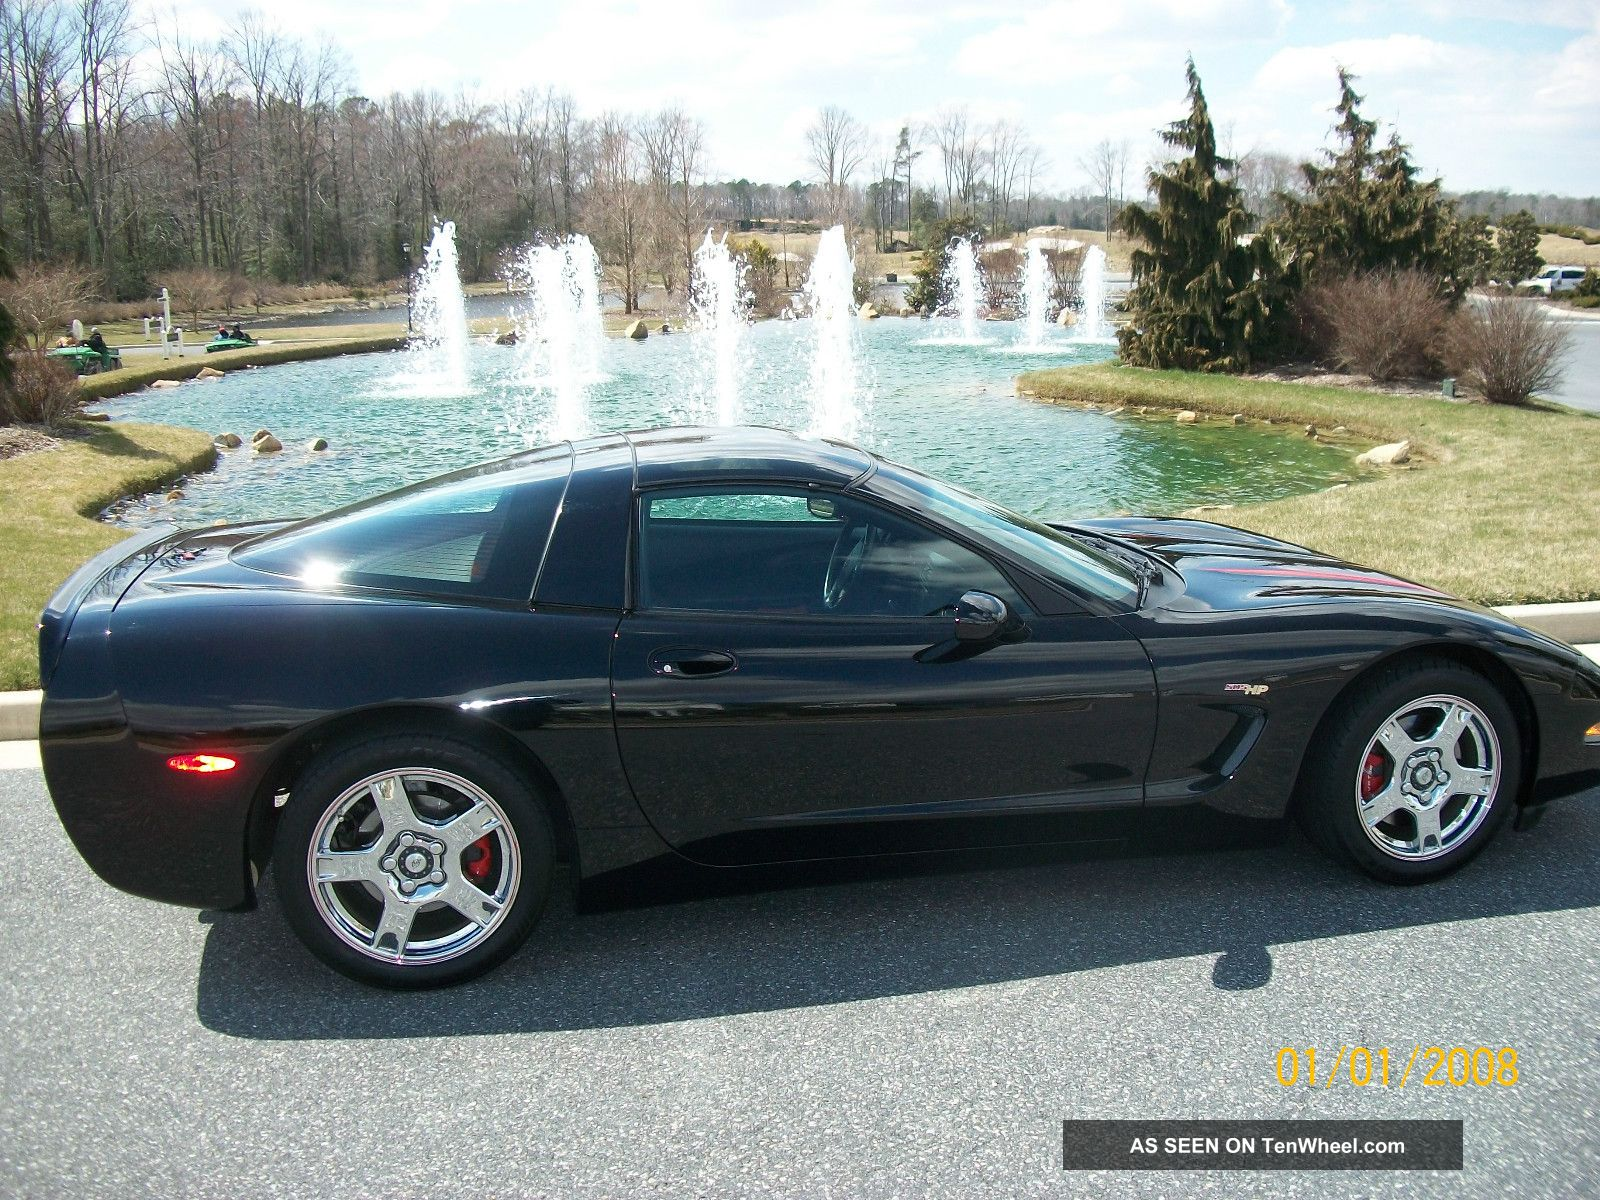 1998 Corvette Black On Black Coupe Corvette photo